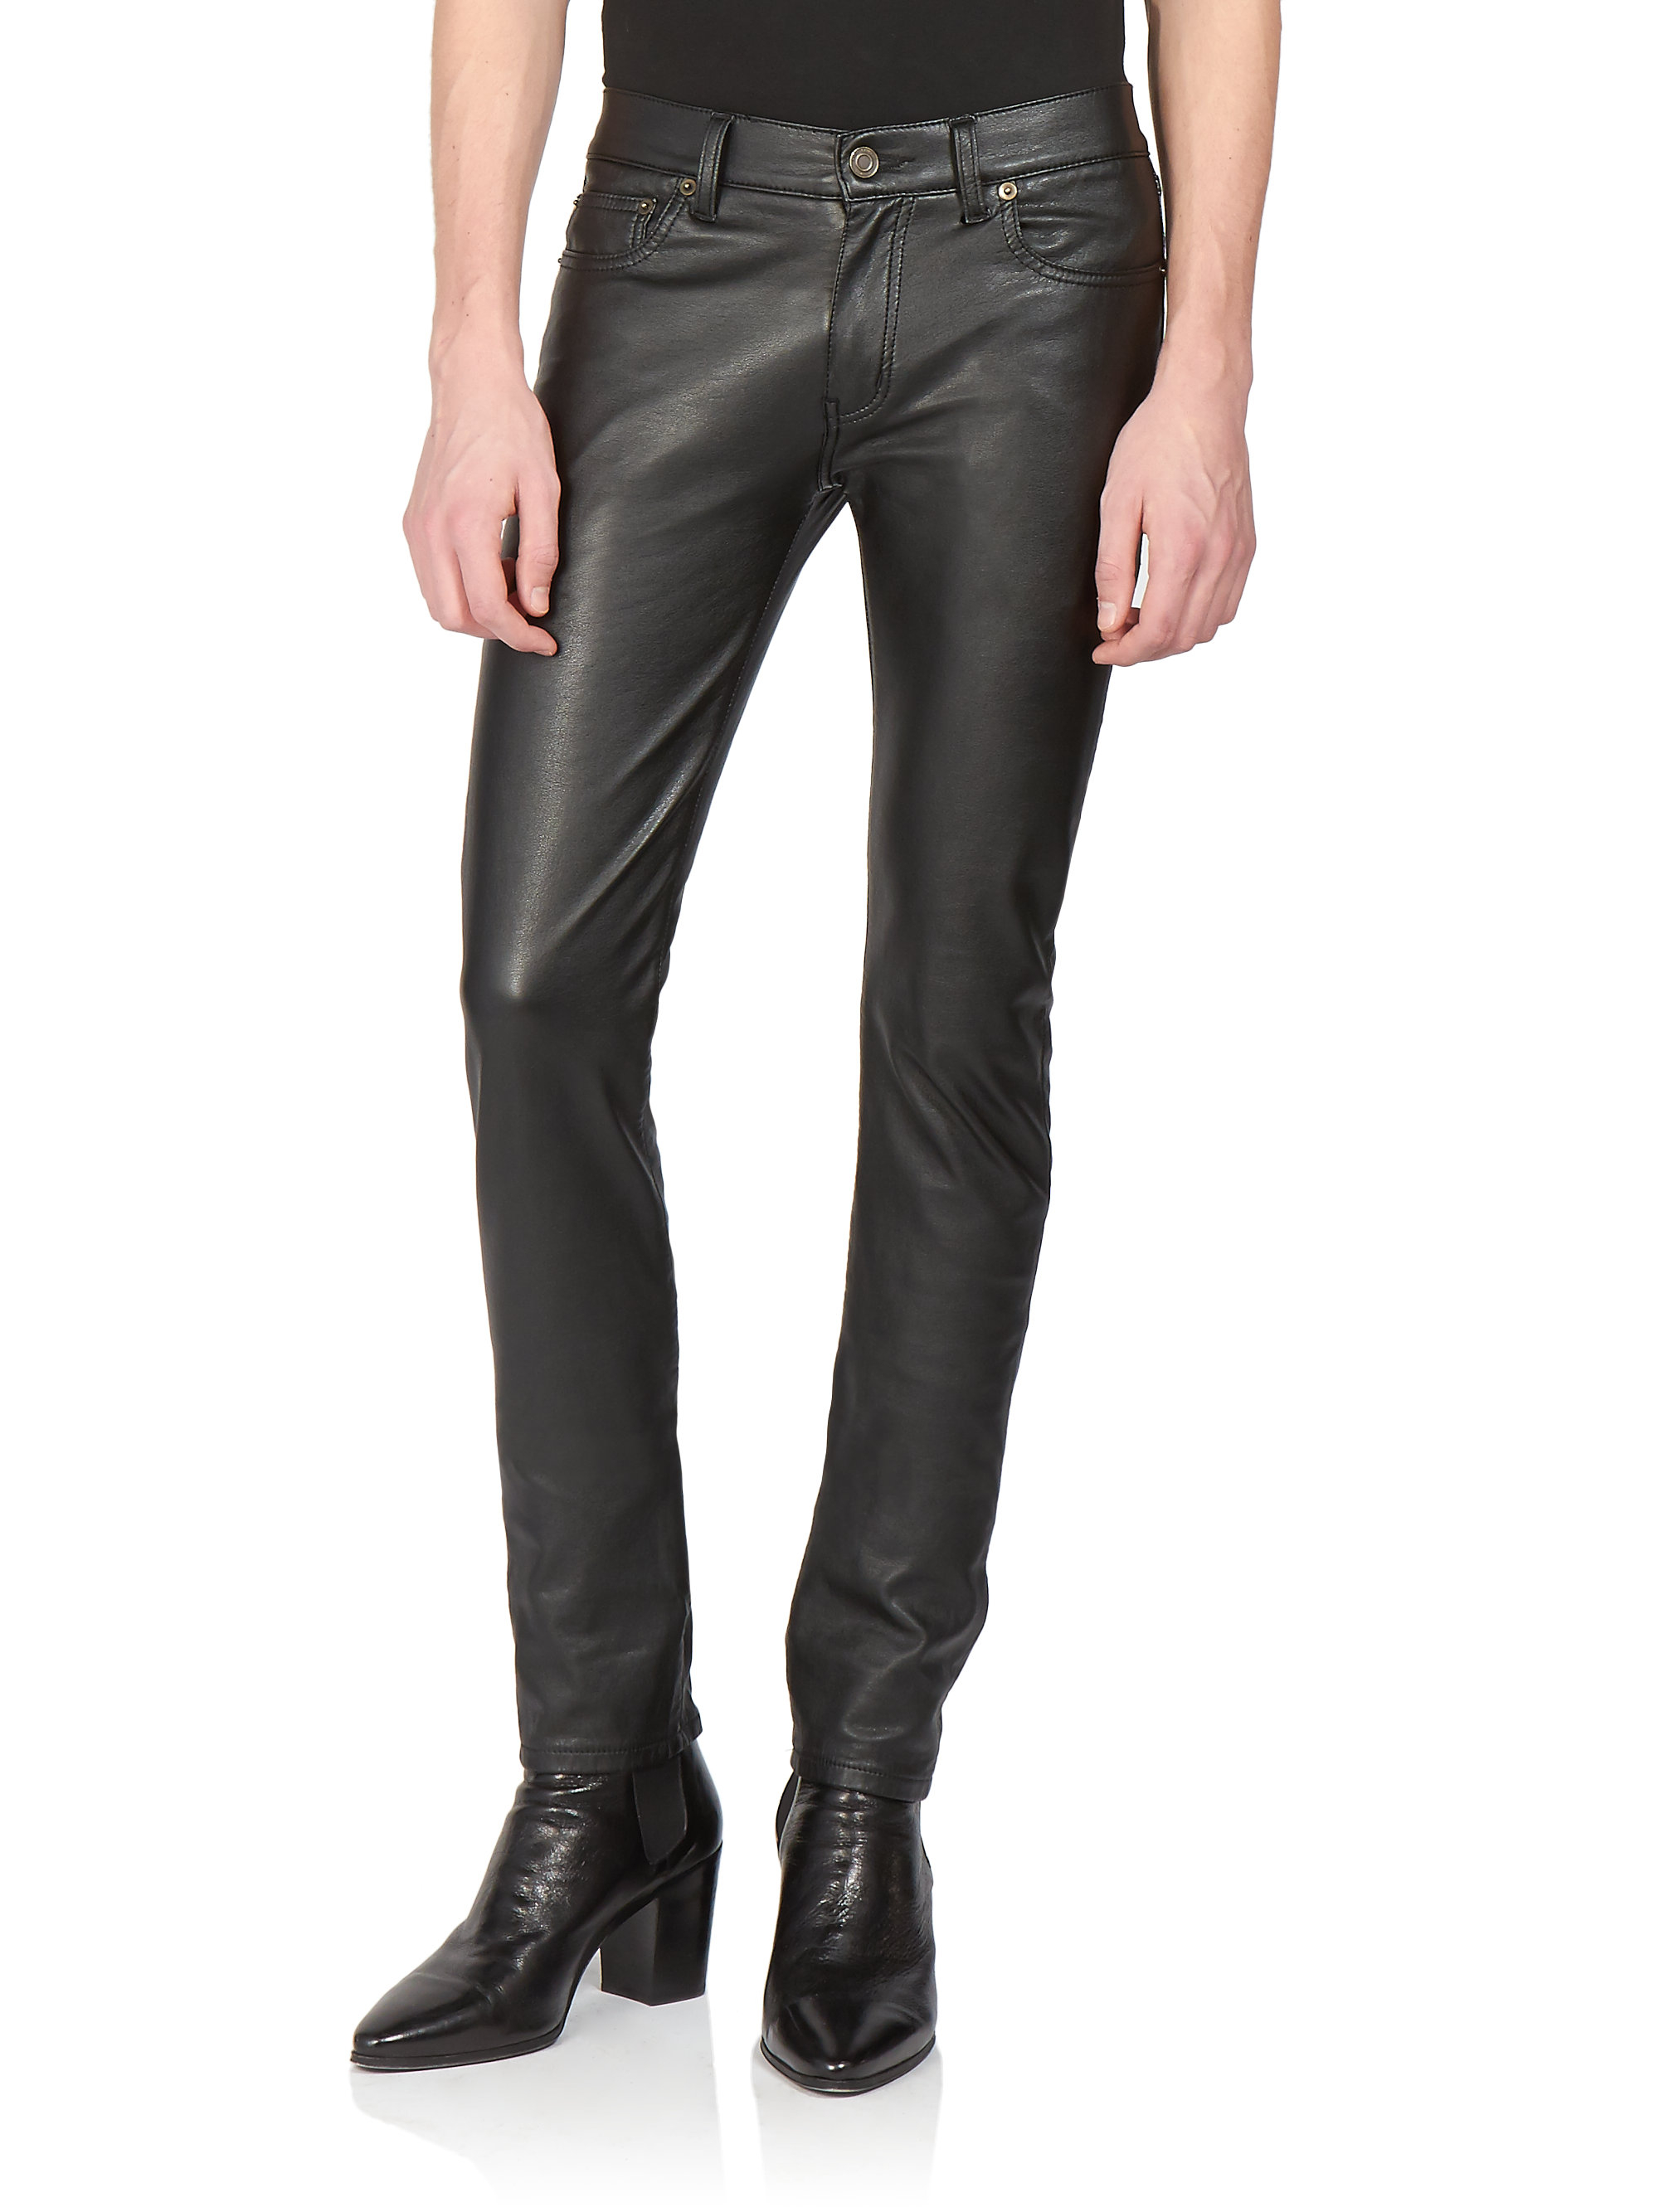 saint laurent faux leather jeans in black for men lyst. Black Bedroom Furniture Sets. Home Design Ideas